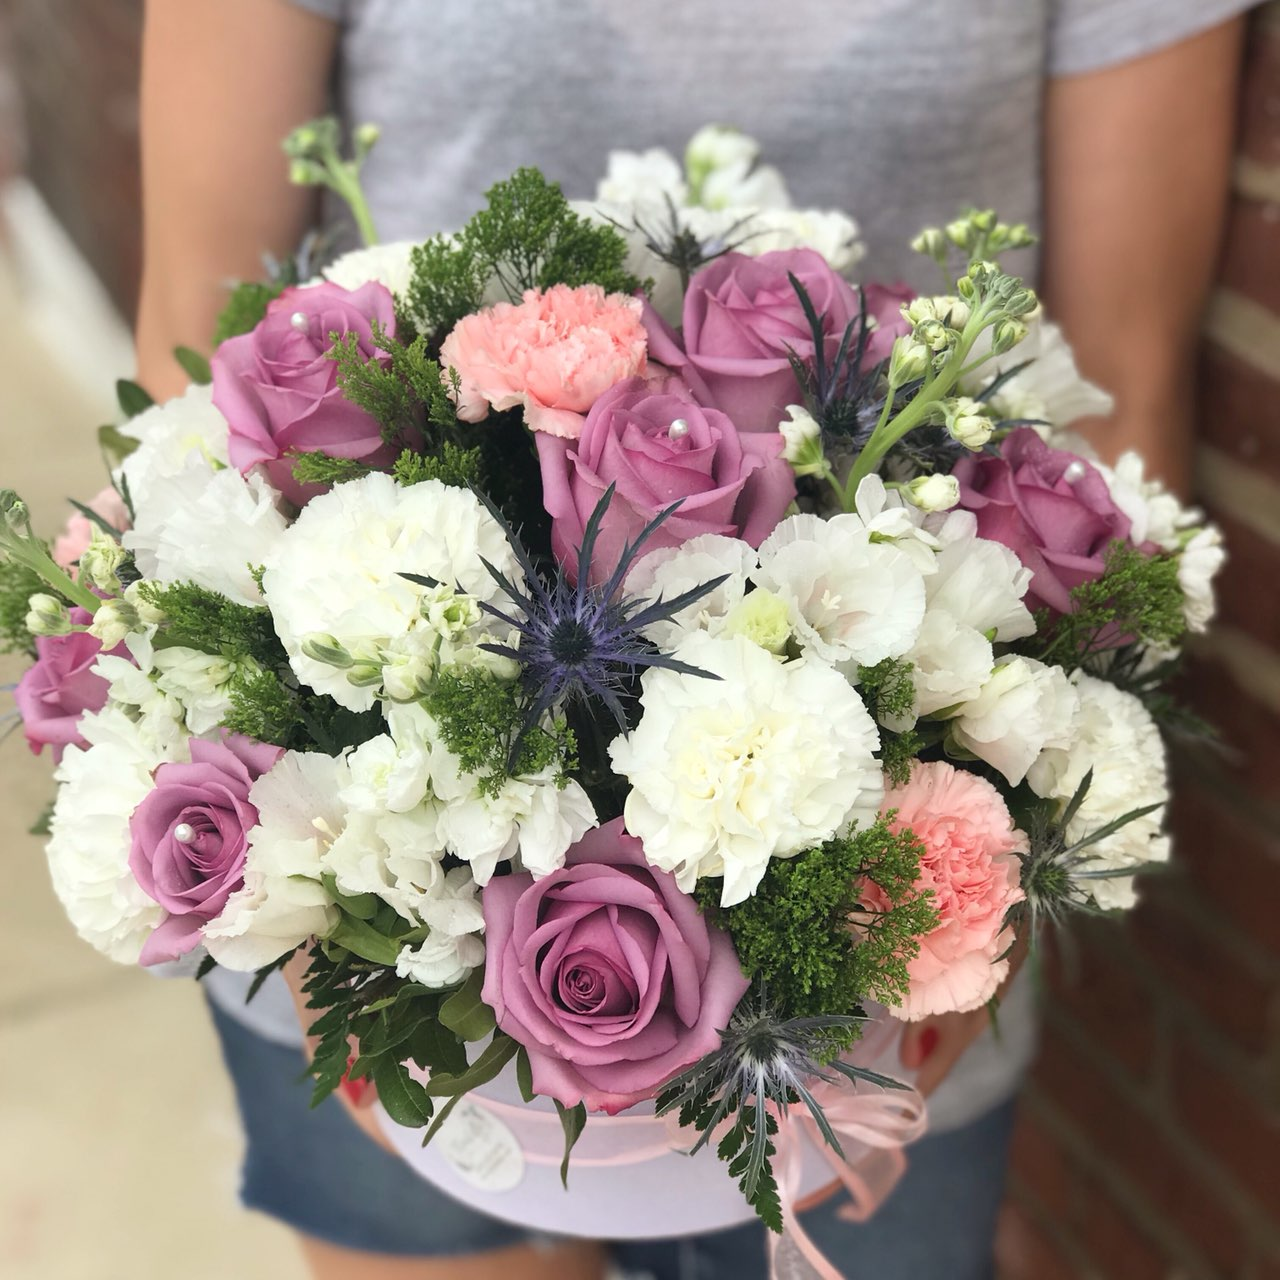 They'll fall in love with this pretty, playful bouquet!  It's a fresh mix they'll adore for any occasion.  Includes:  Purple roses, pink and white carnations, eringium, white stock, assorted greens. Velvet box Free message card